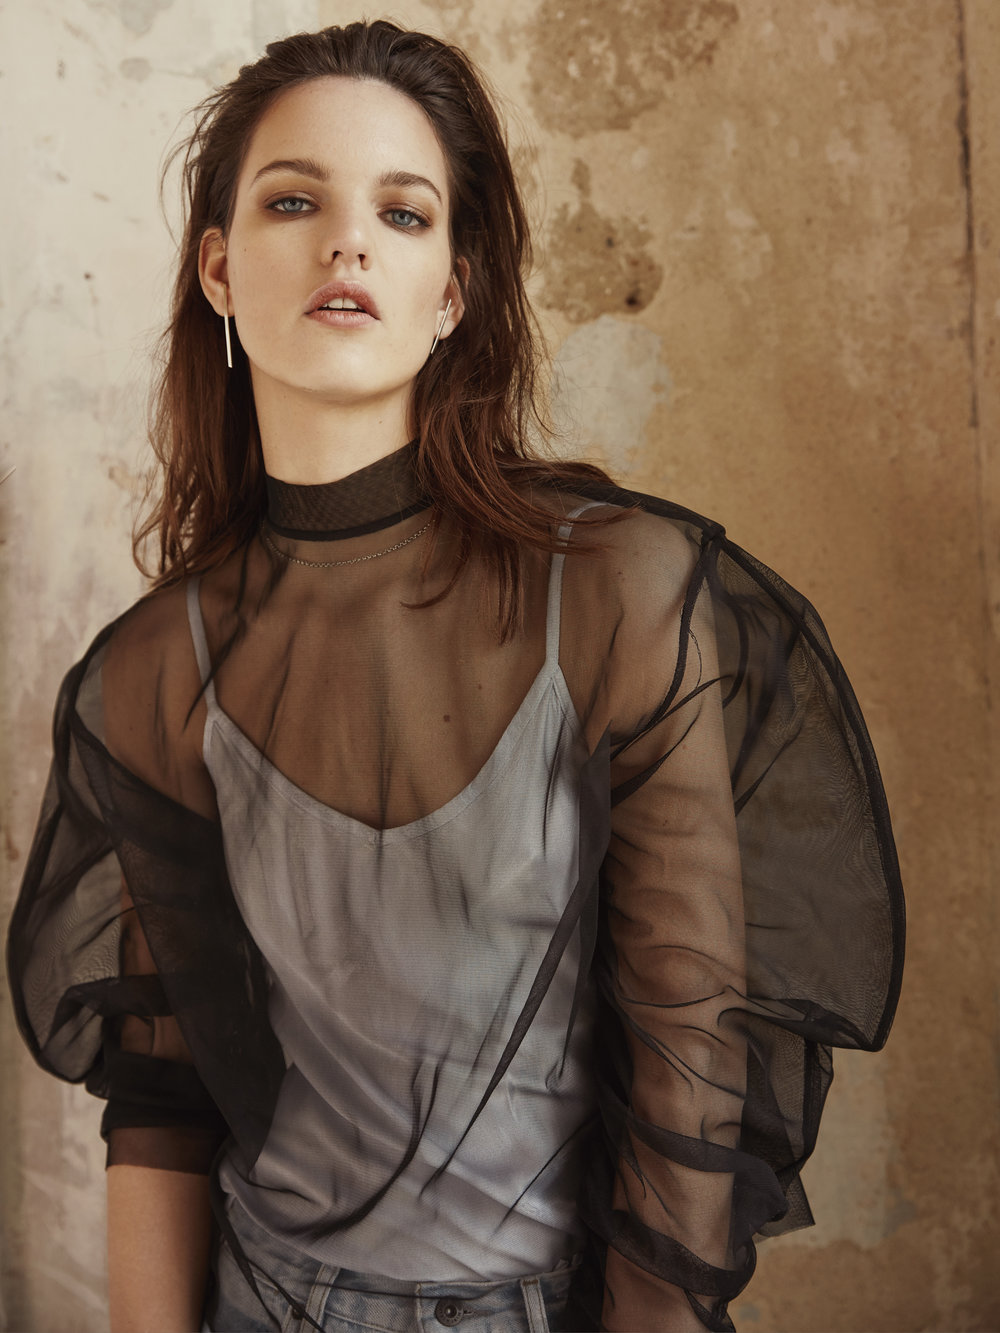 SHOT_02_180215_LOM_STYLIST_SHEER_284.jpg